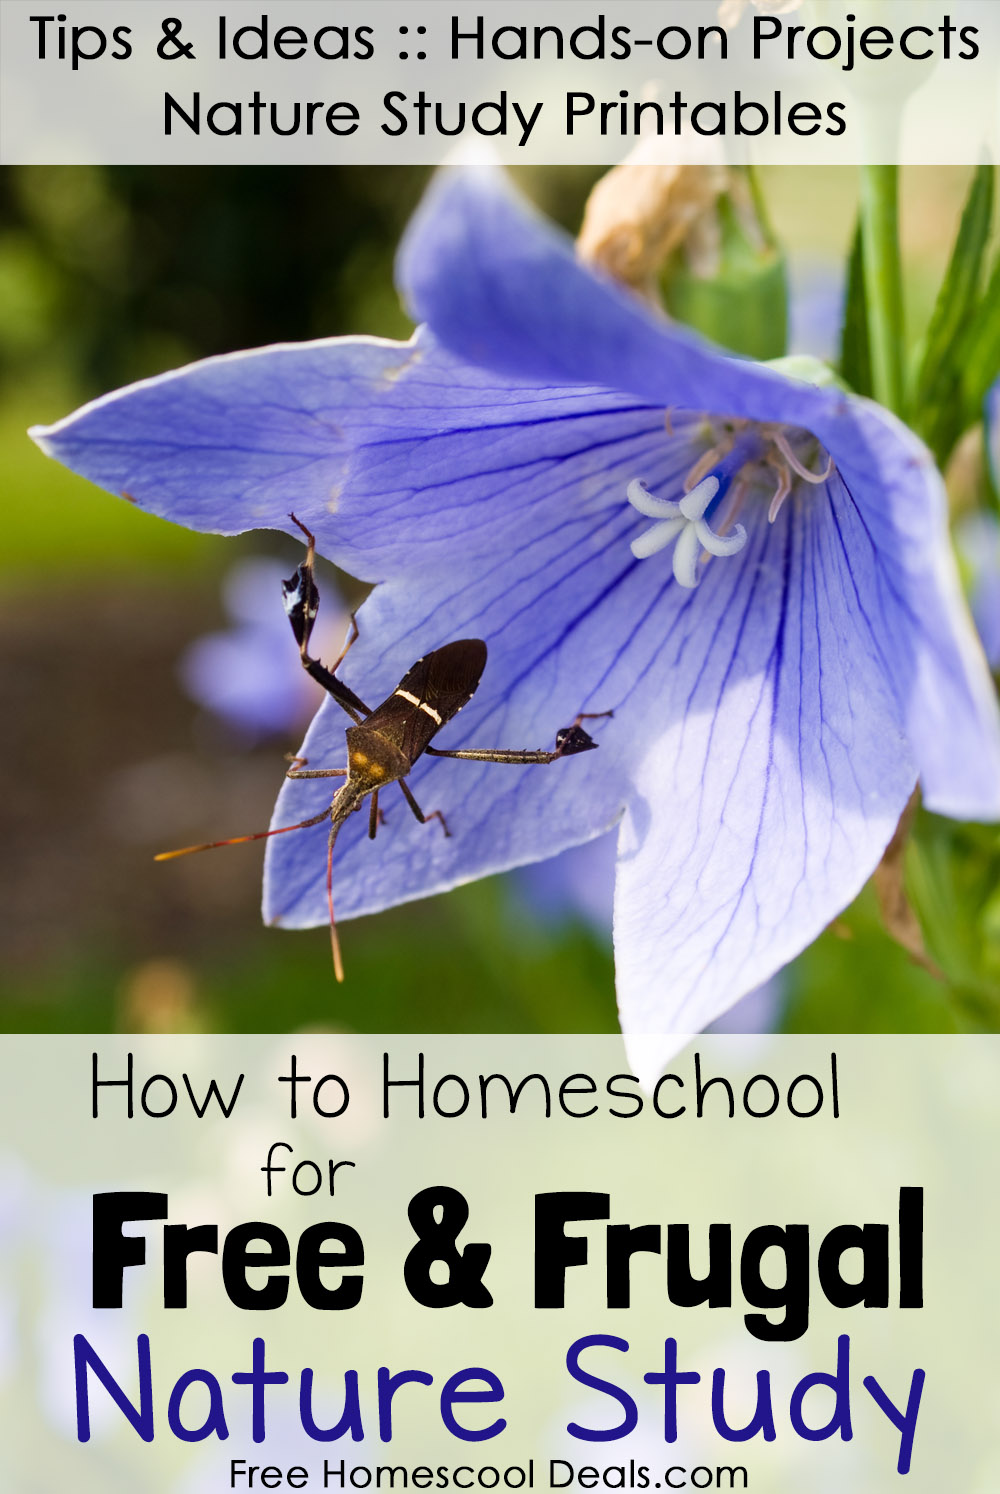 How to Homeschool for Free and Frugal Nature Study  : FHD How to Homeschool Free and Frugal Nature Study from www.freehomeschooldeals.com size 1000 x 1494 jpeg 265kB